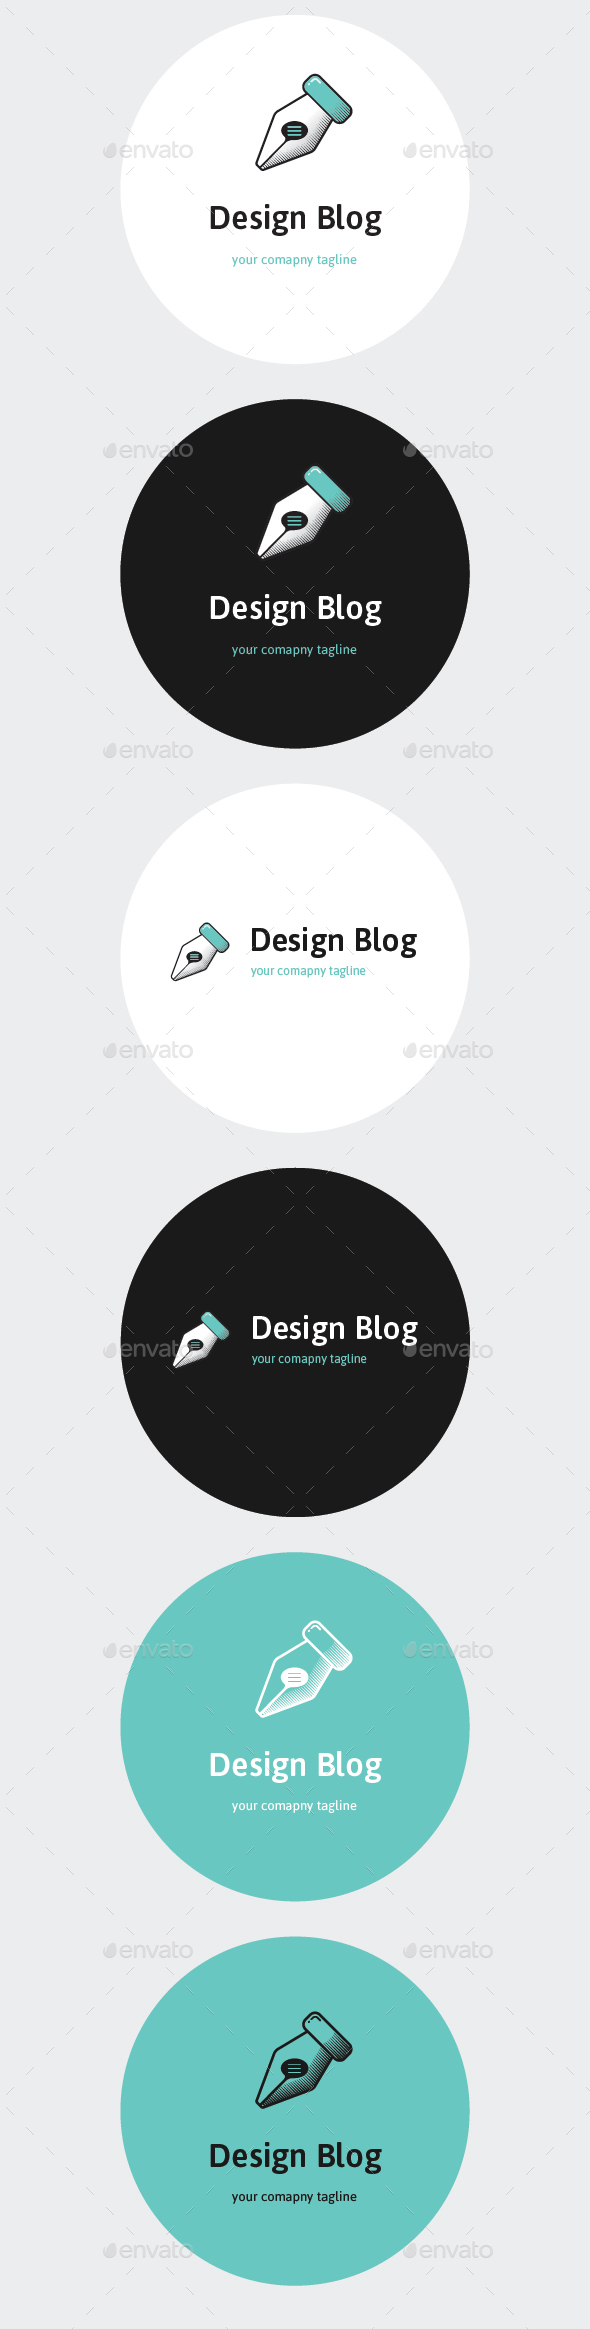 Design Blog Logo Template - Objects Logo Templates